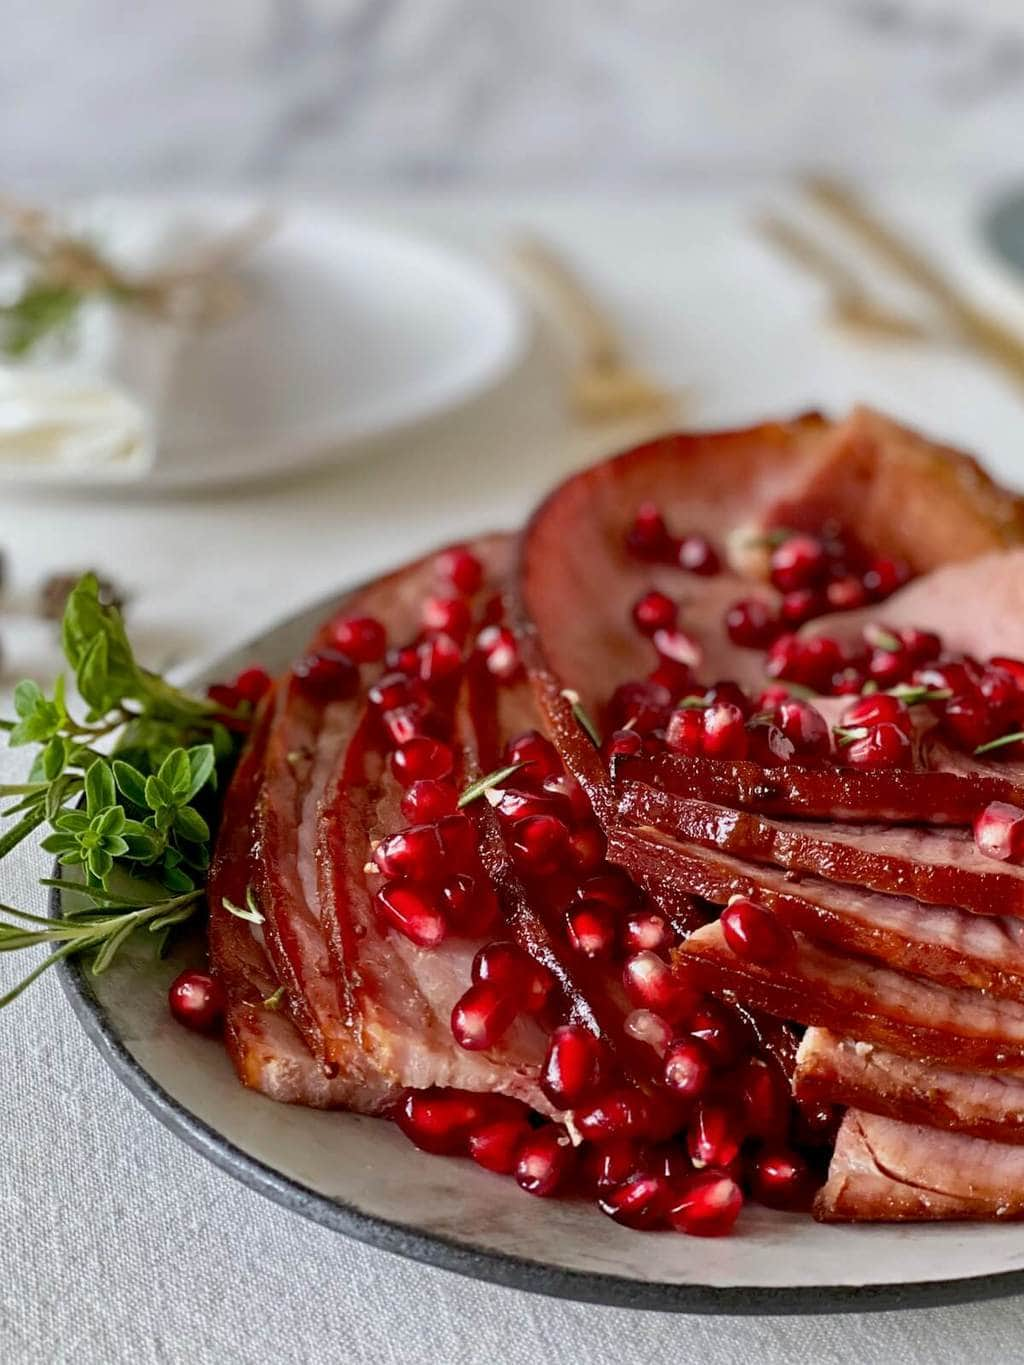 close up of cooked ham slices on platter with pomegranate and herbs